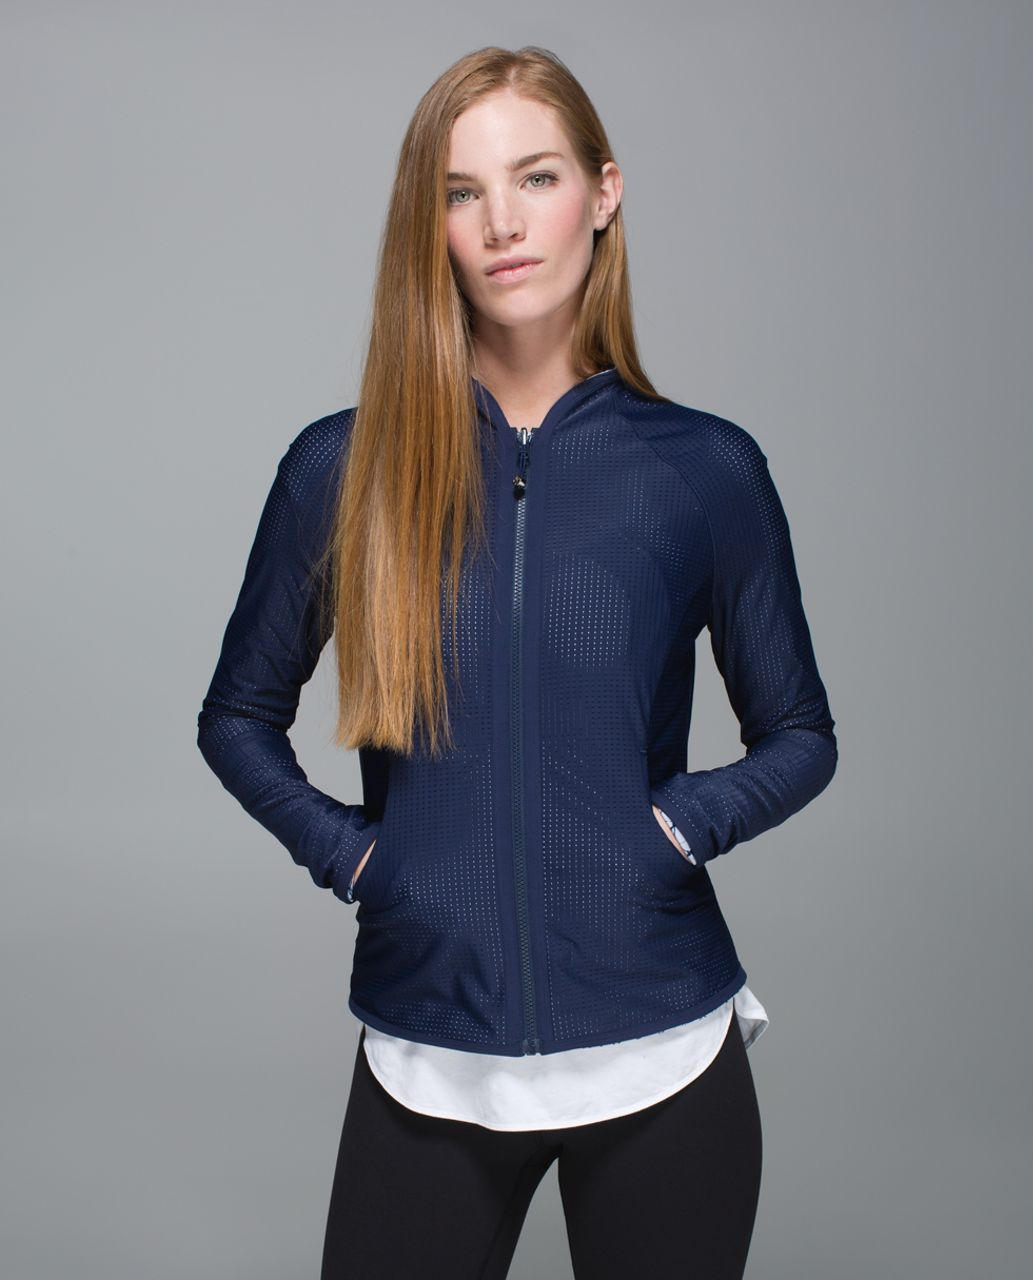 Lululemon Find Your Bliss Jacket - Deep Navy / Star Crushed Silver Fox Deep Navy